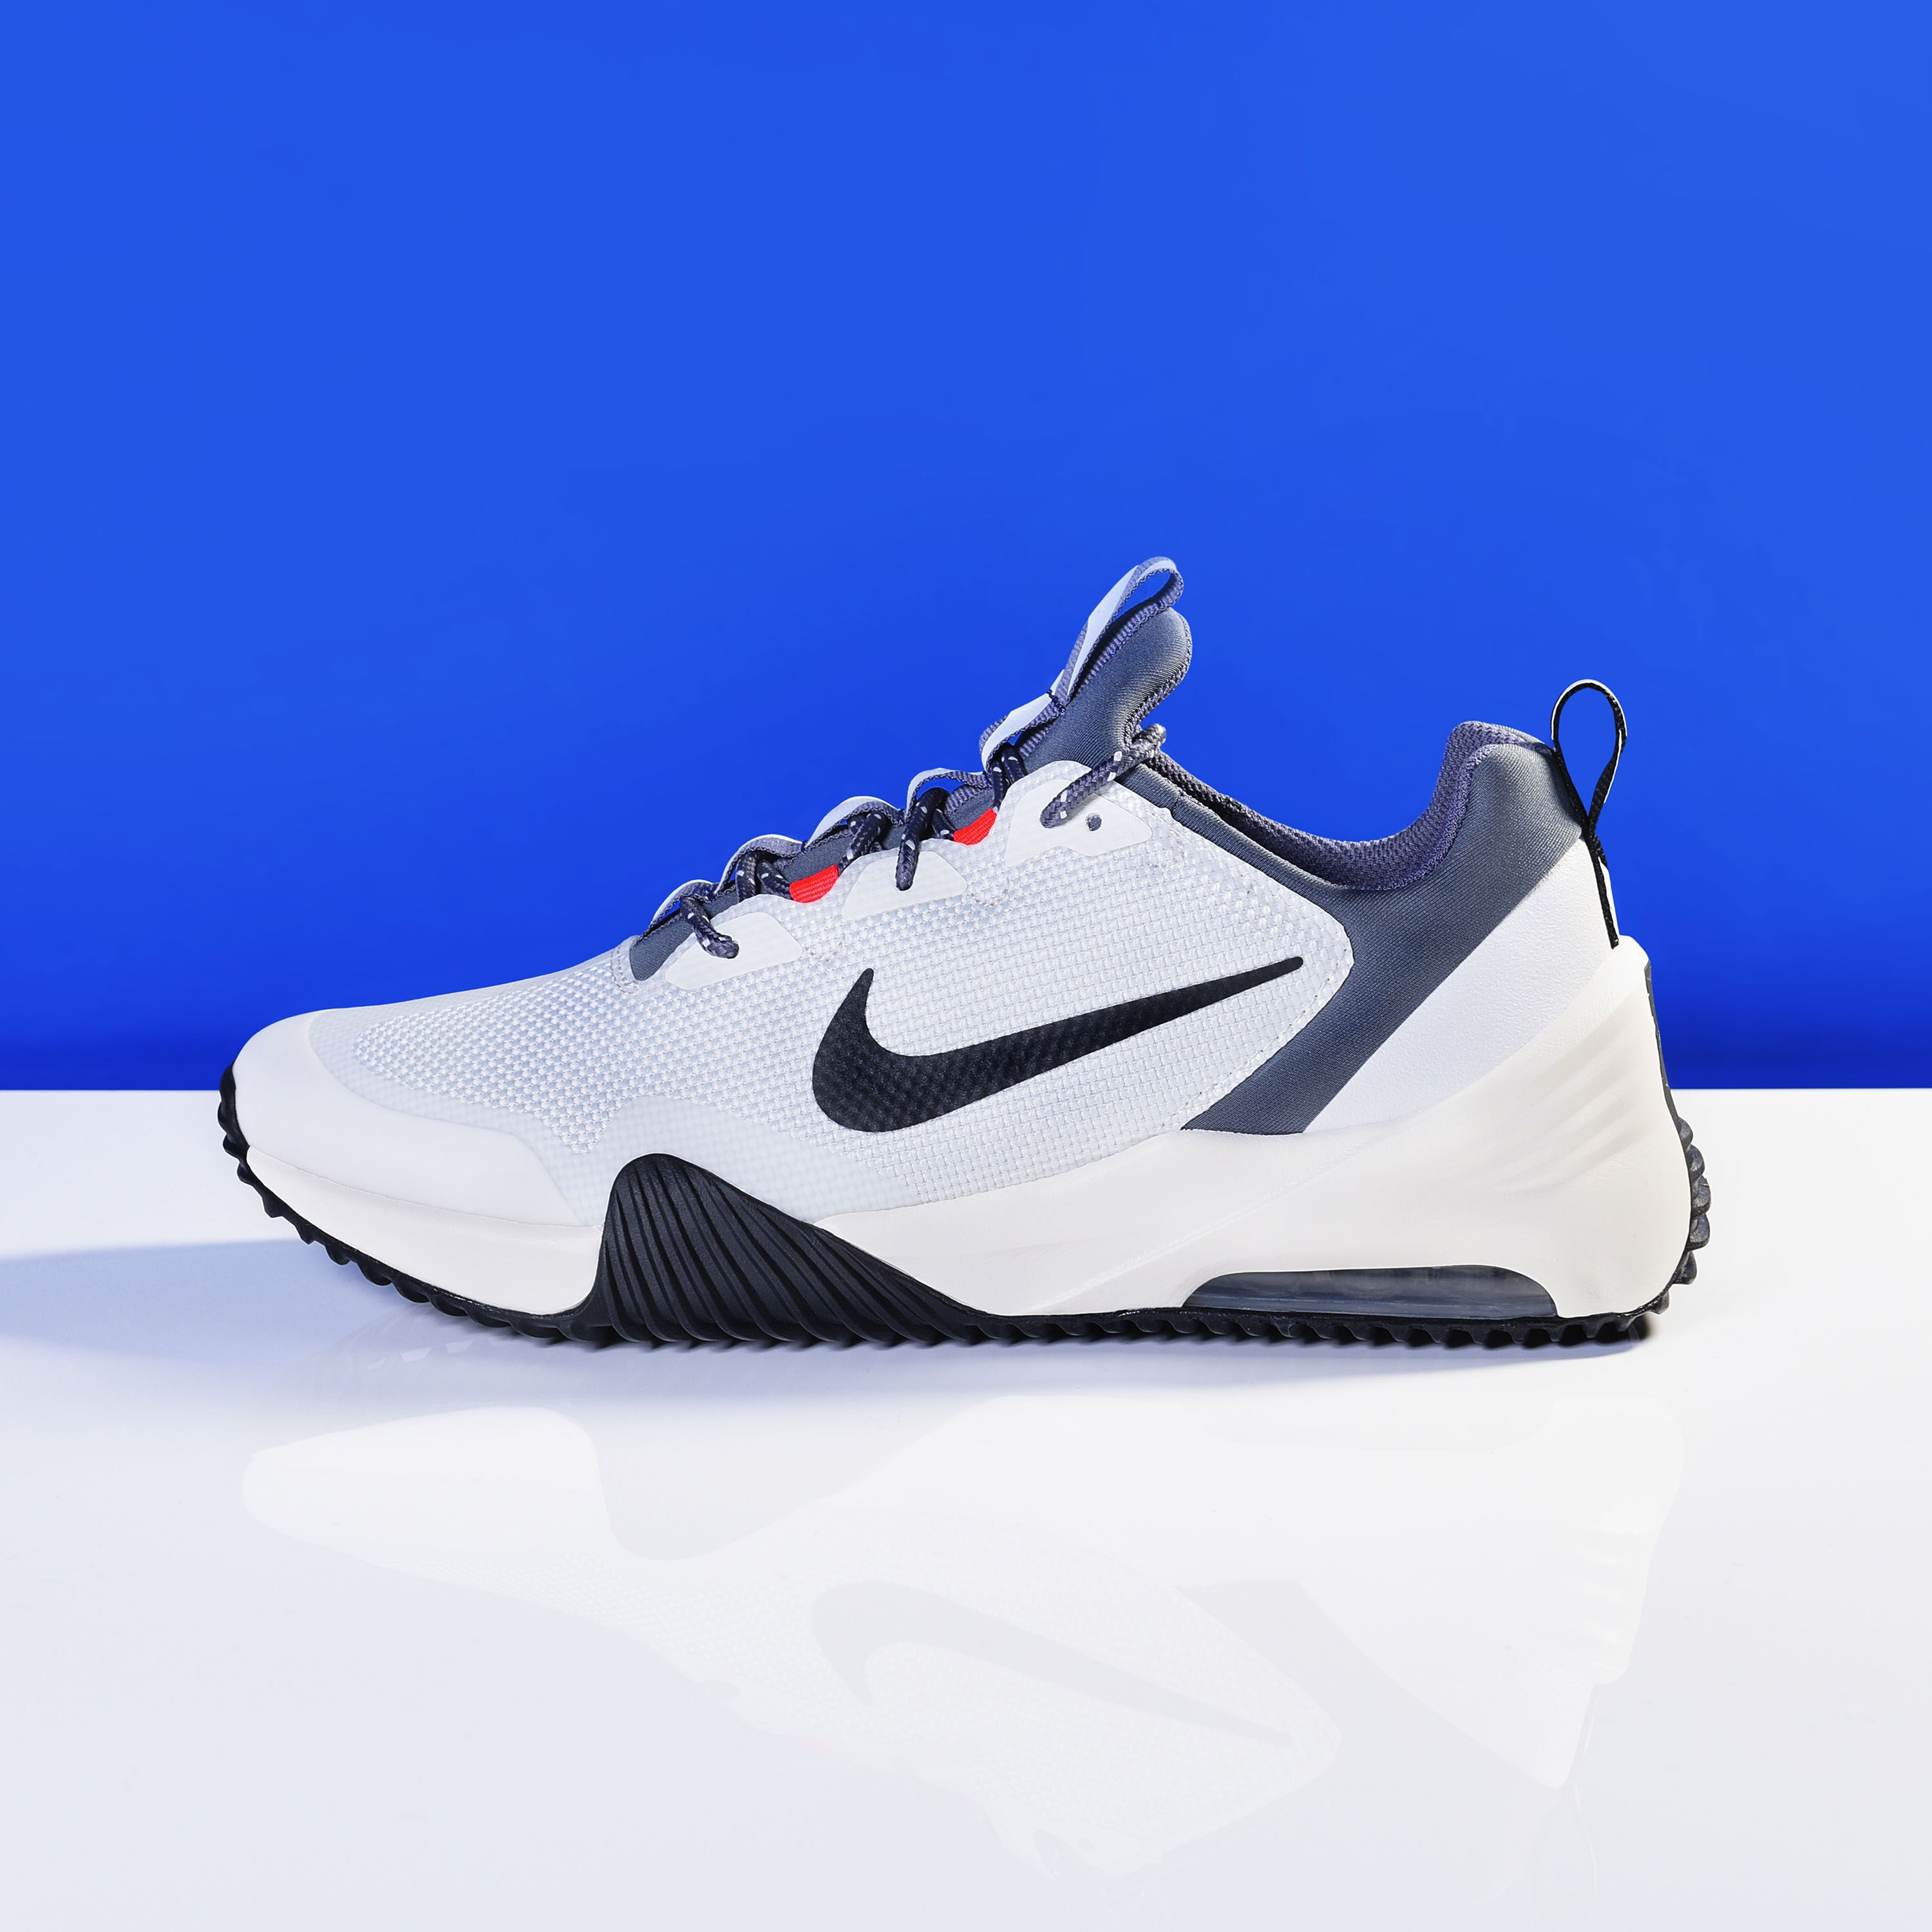 san francisco 86a06 bce2f Step into the weekend in style with the Nnike Air Max Grigora, these are  bound